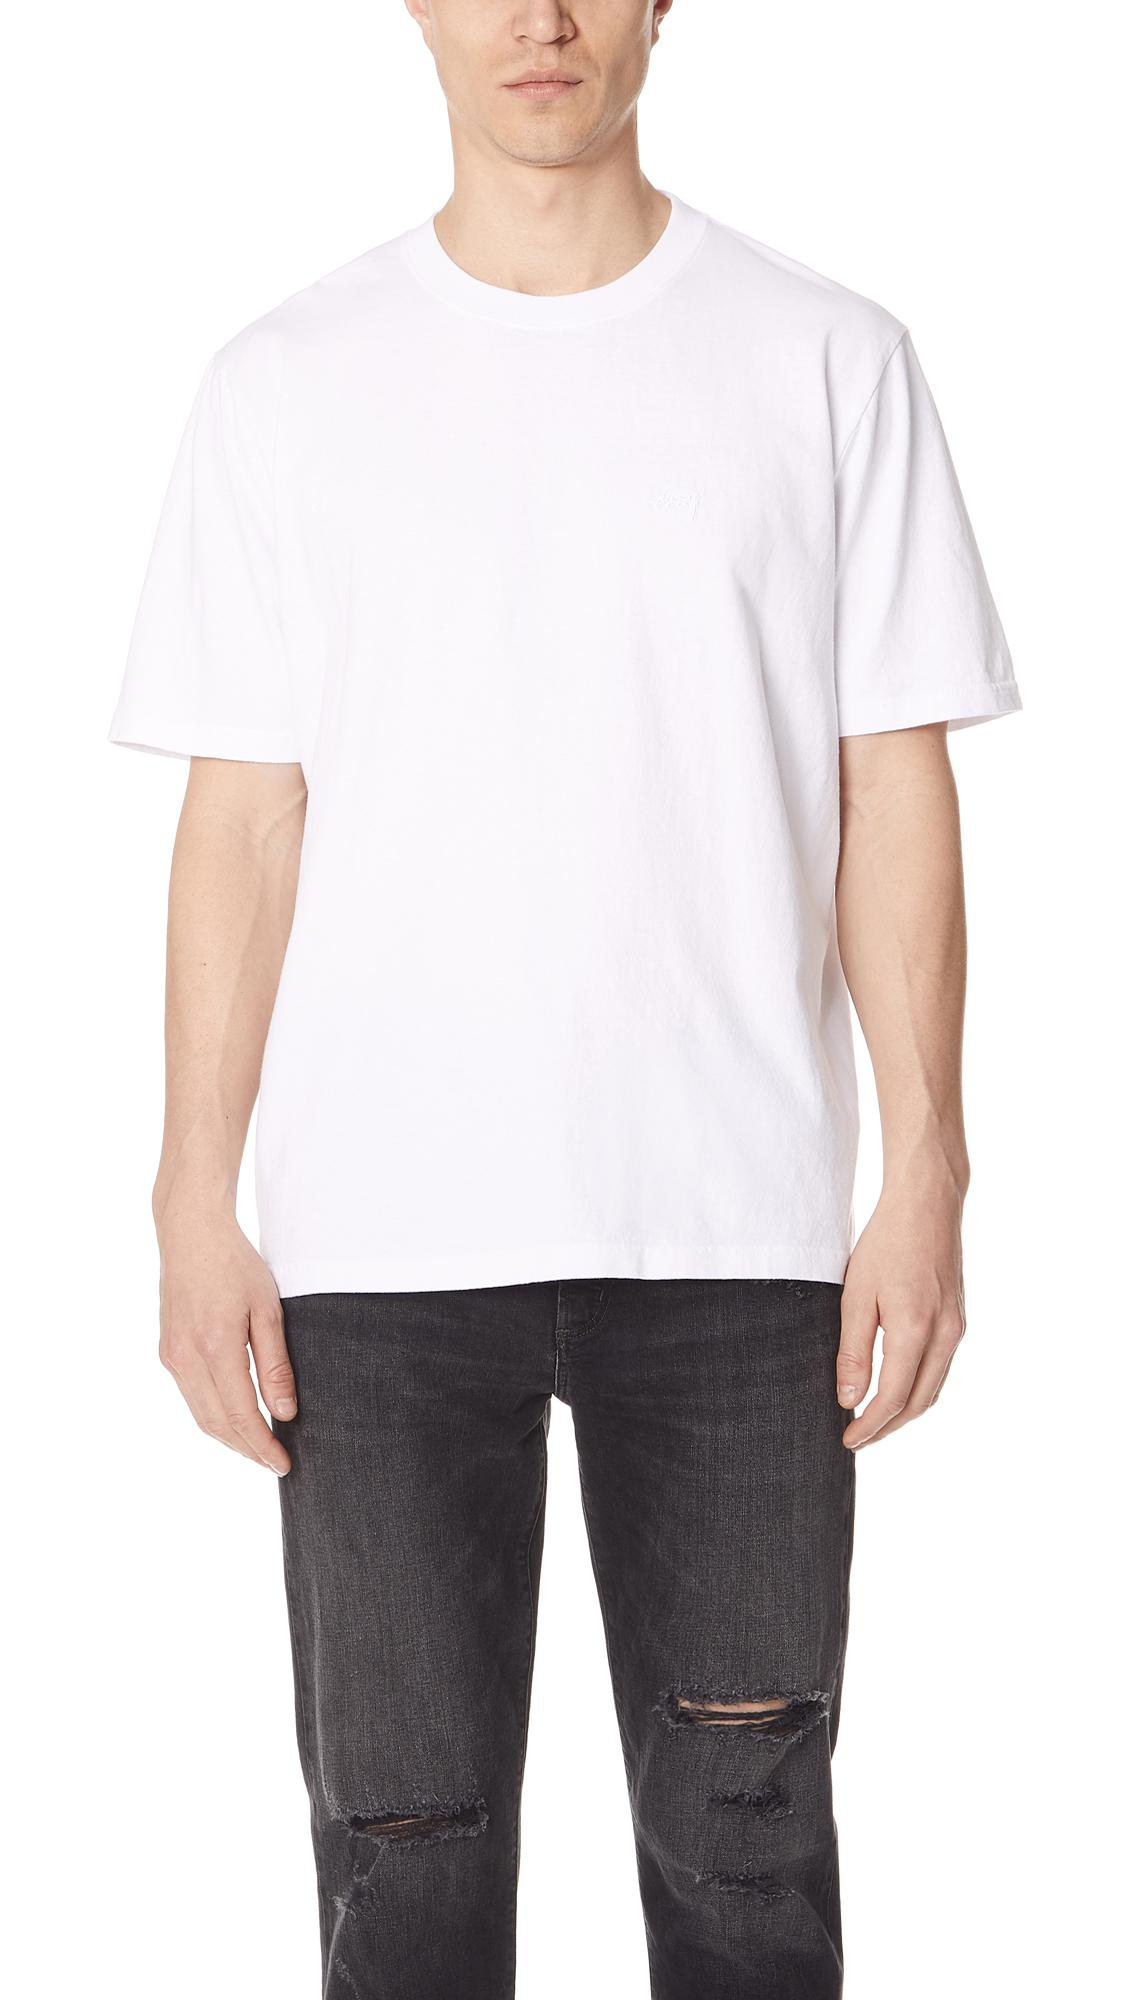 c97b9325f47 Stussy Classic Short Sleeve Jersey Tee in White for Men - Lyst